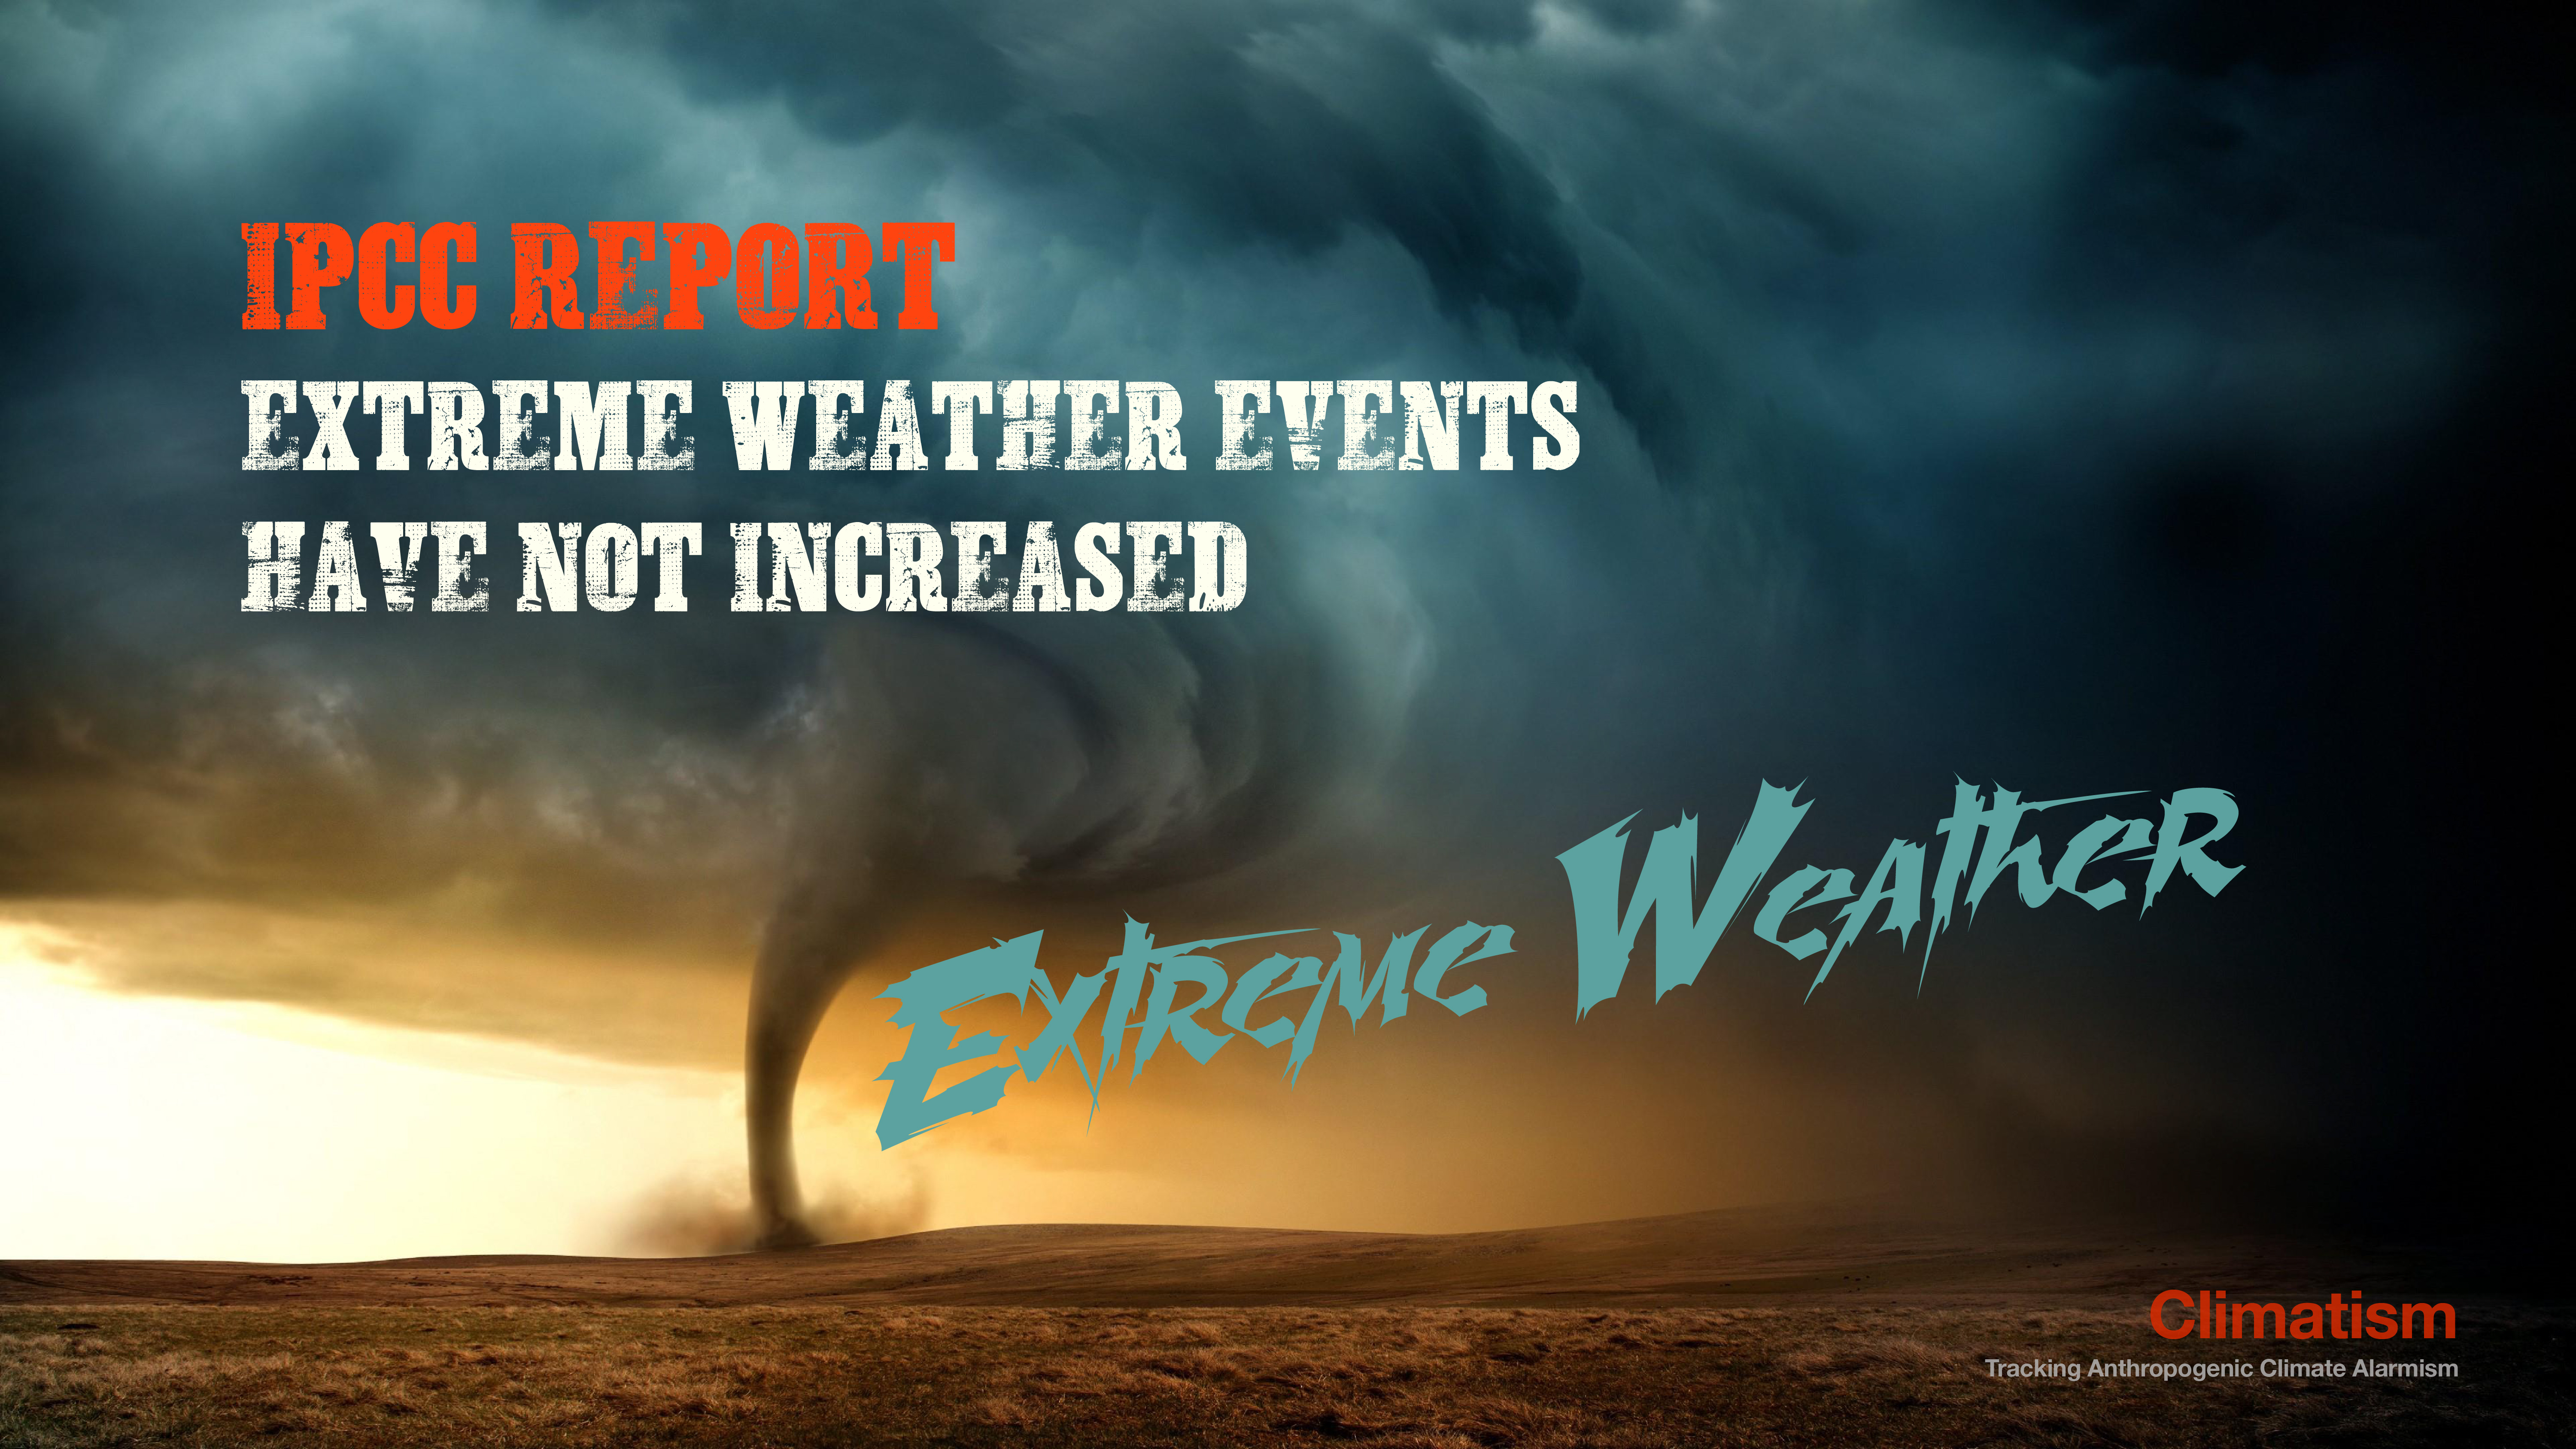 IPCC REPORT - EXTREME WEATHER NO INCREASE - CLIMATISM